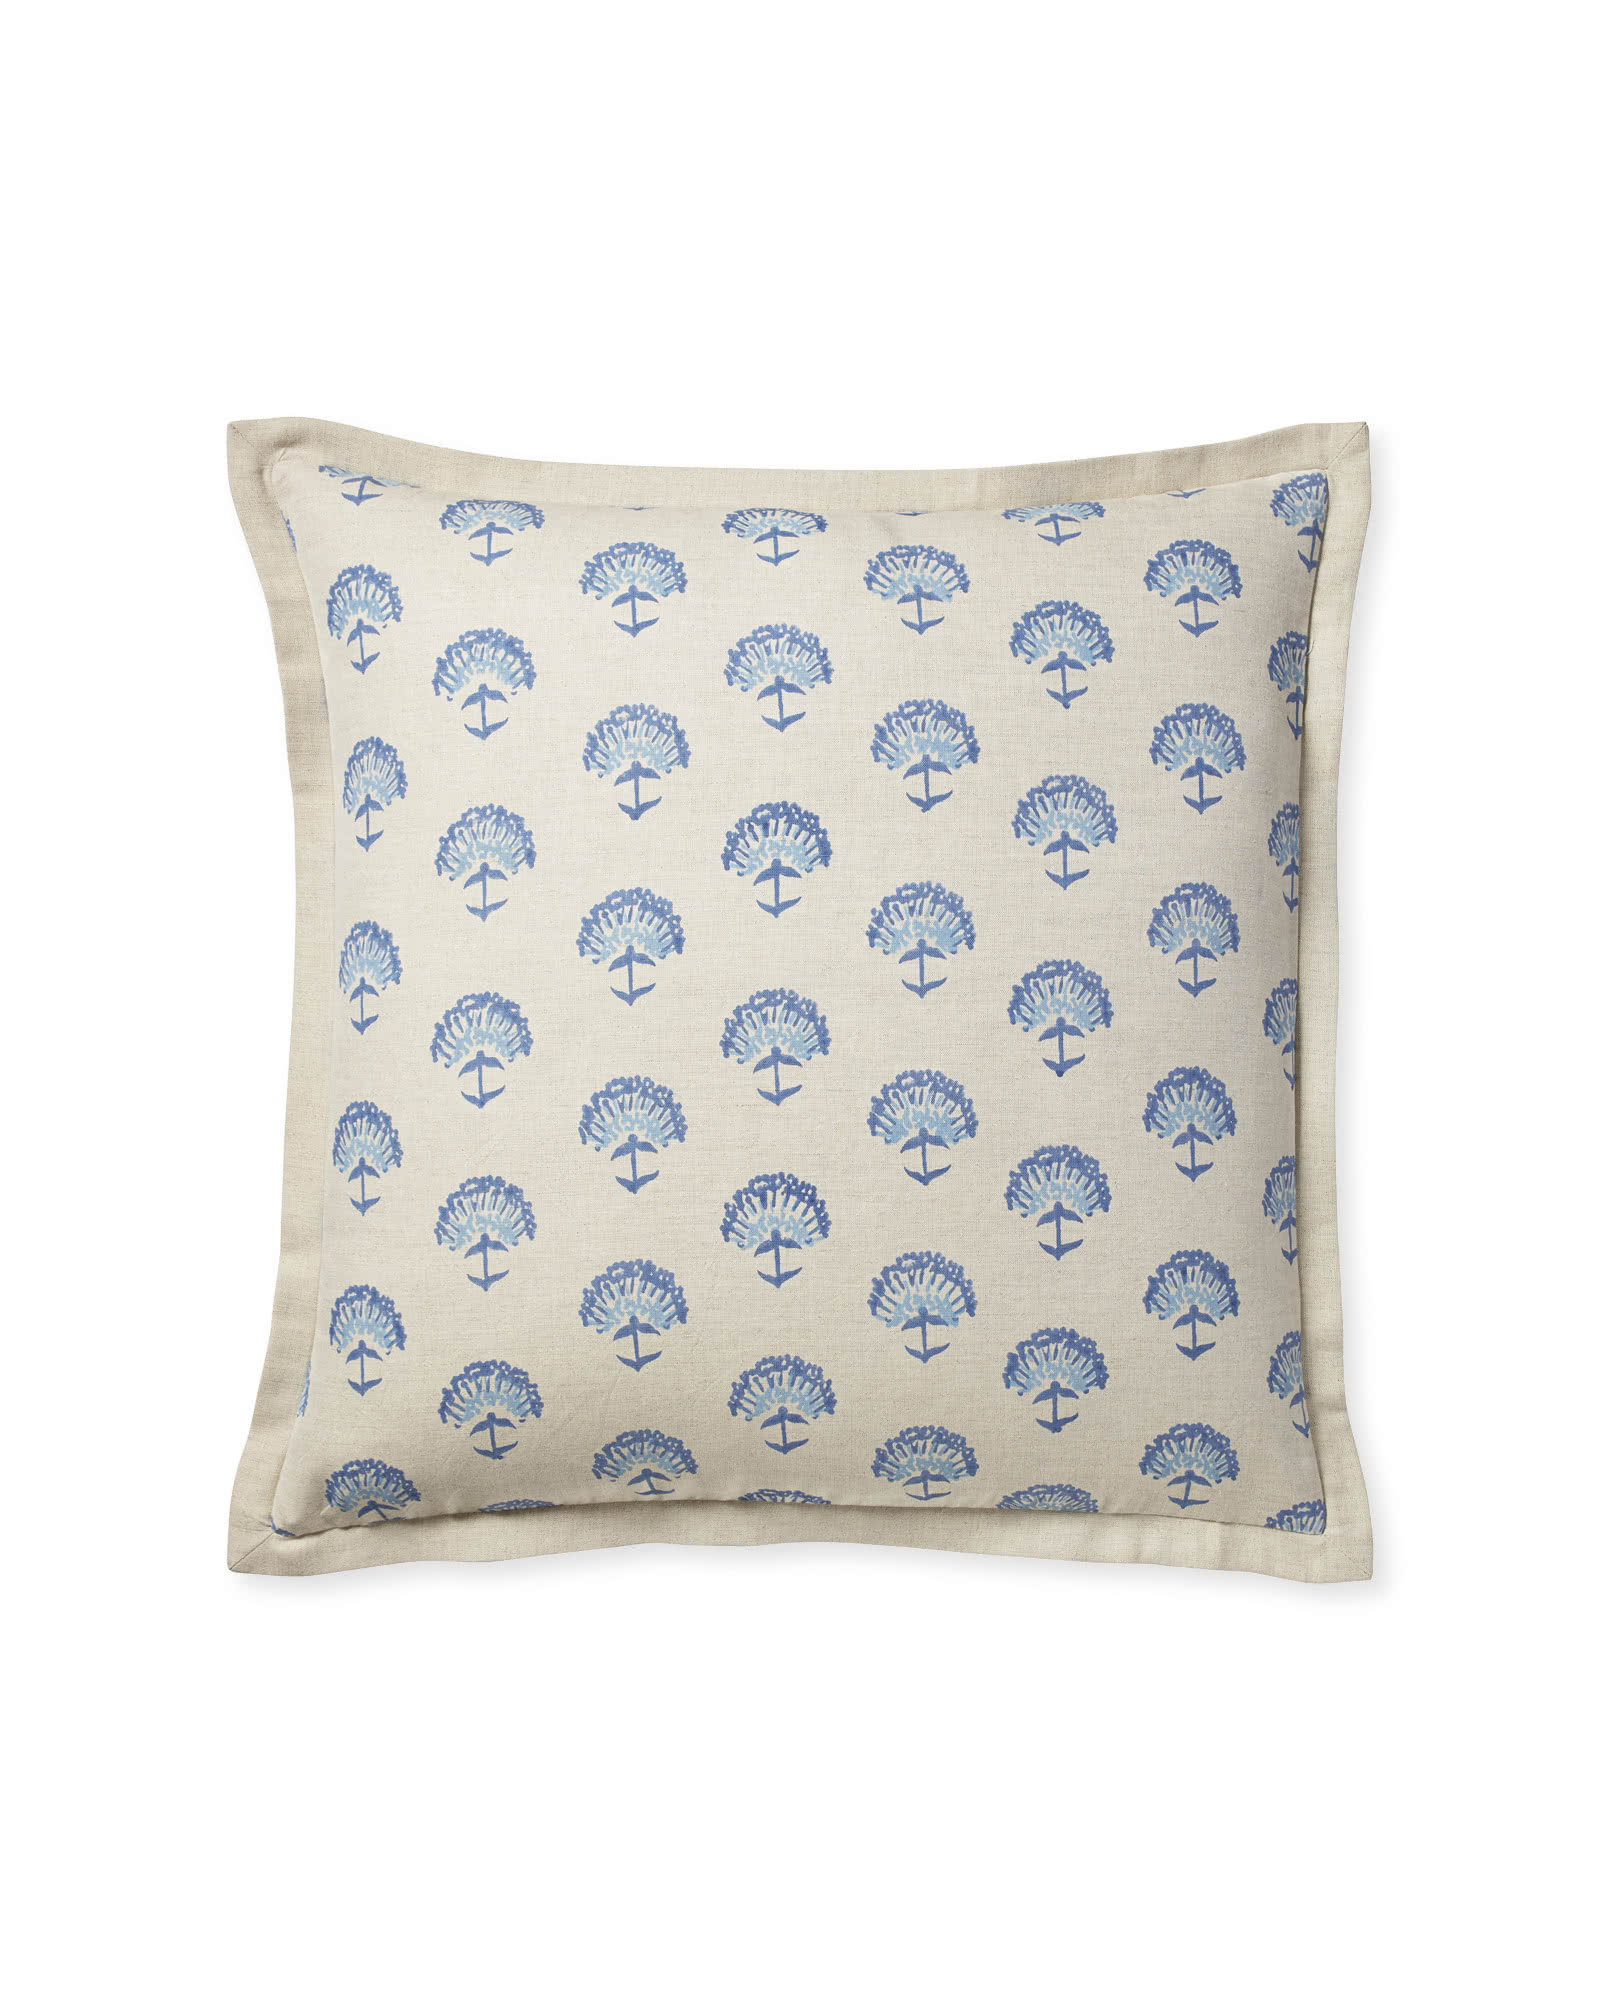 Astoria Pillow Cover, Harbor